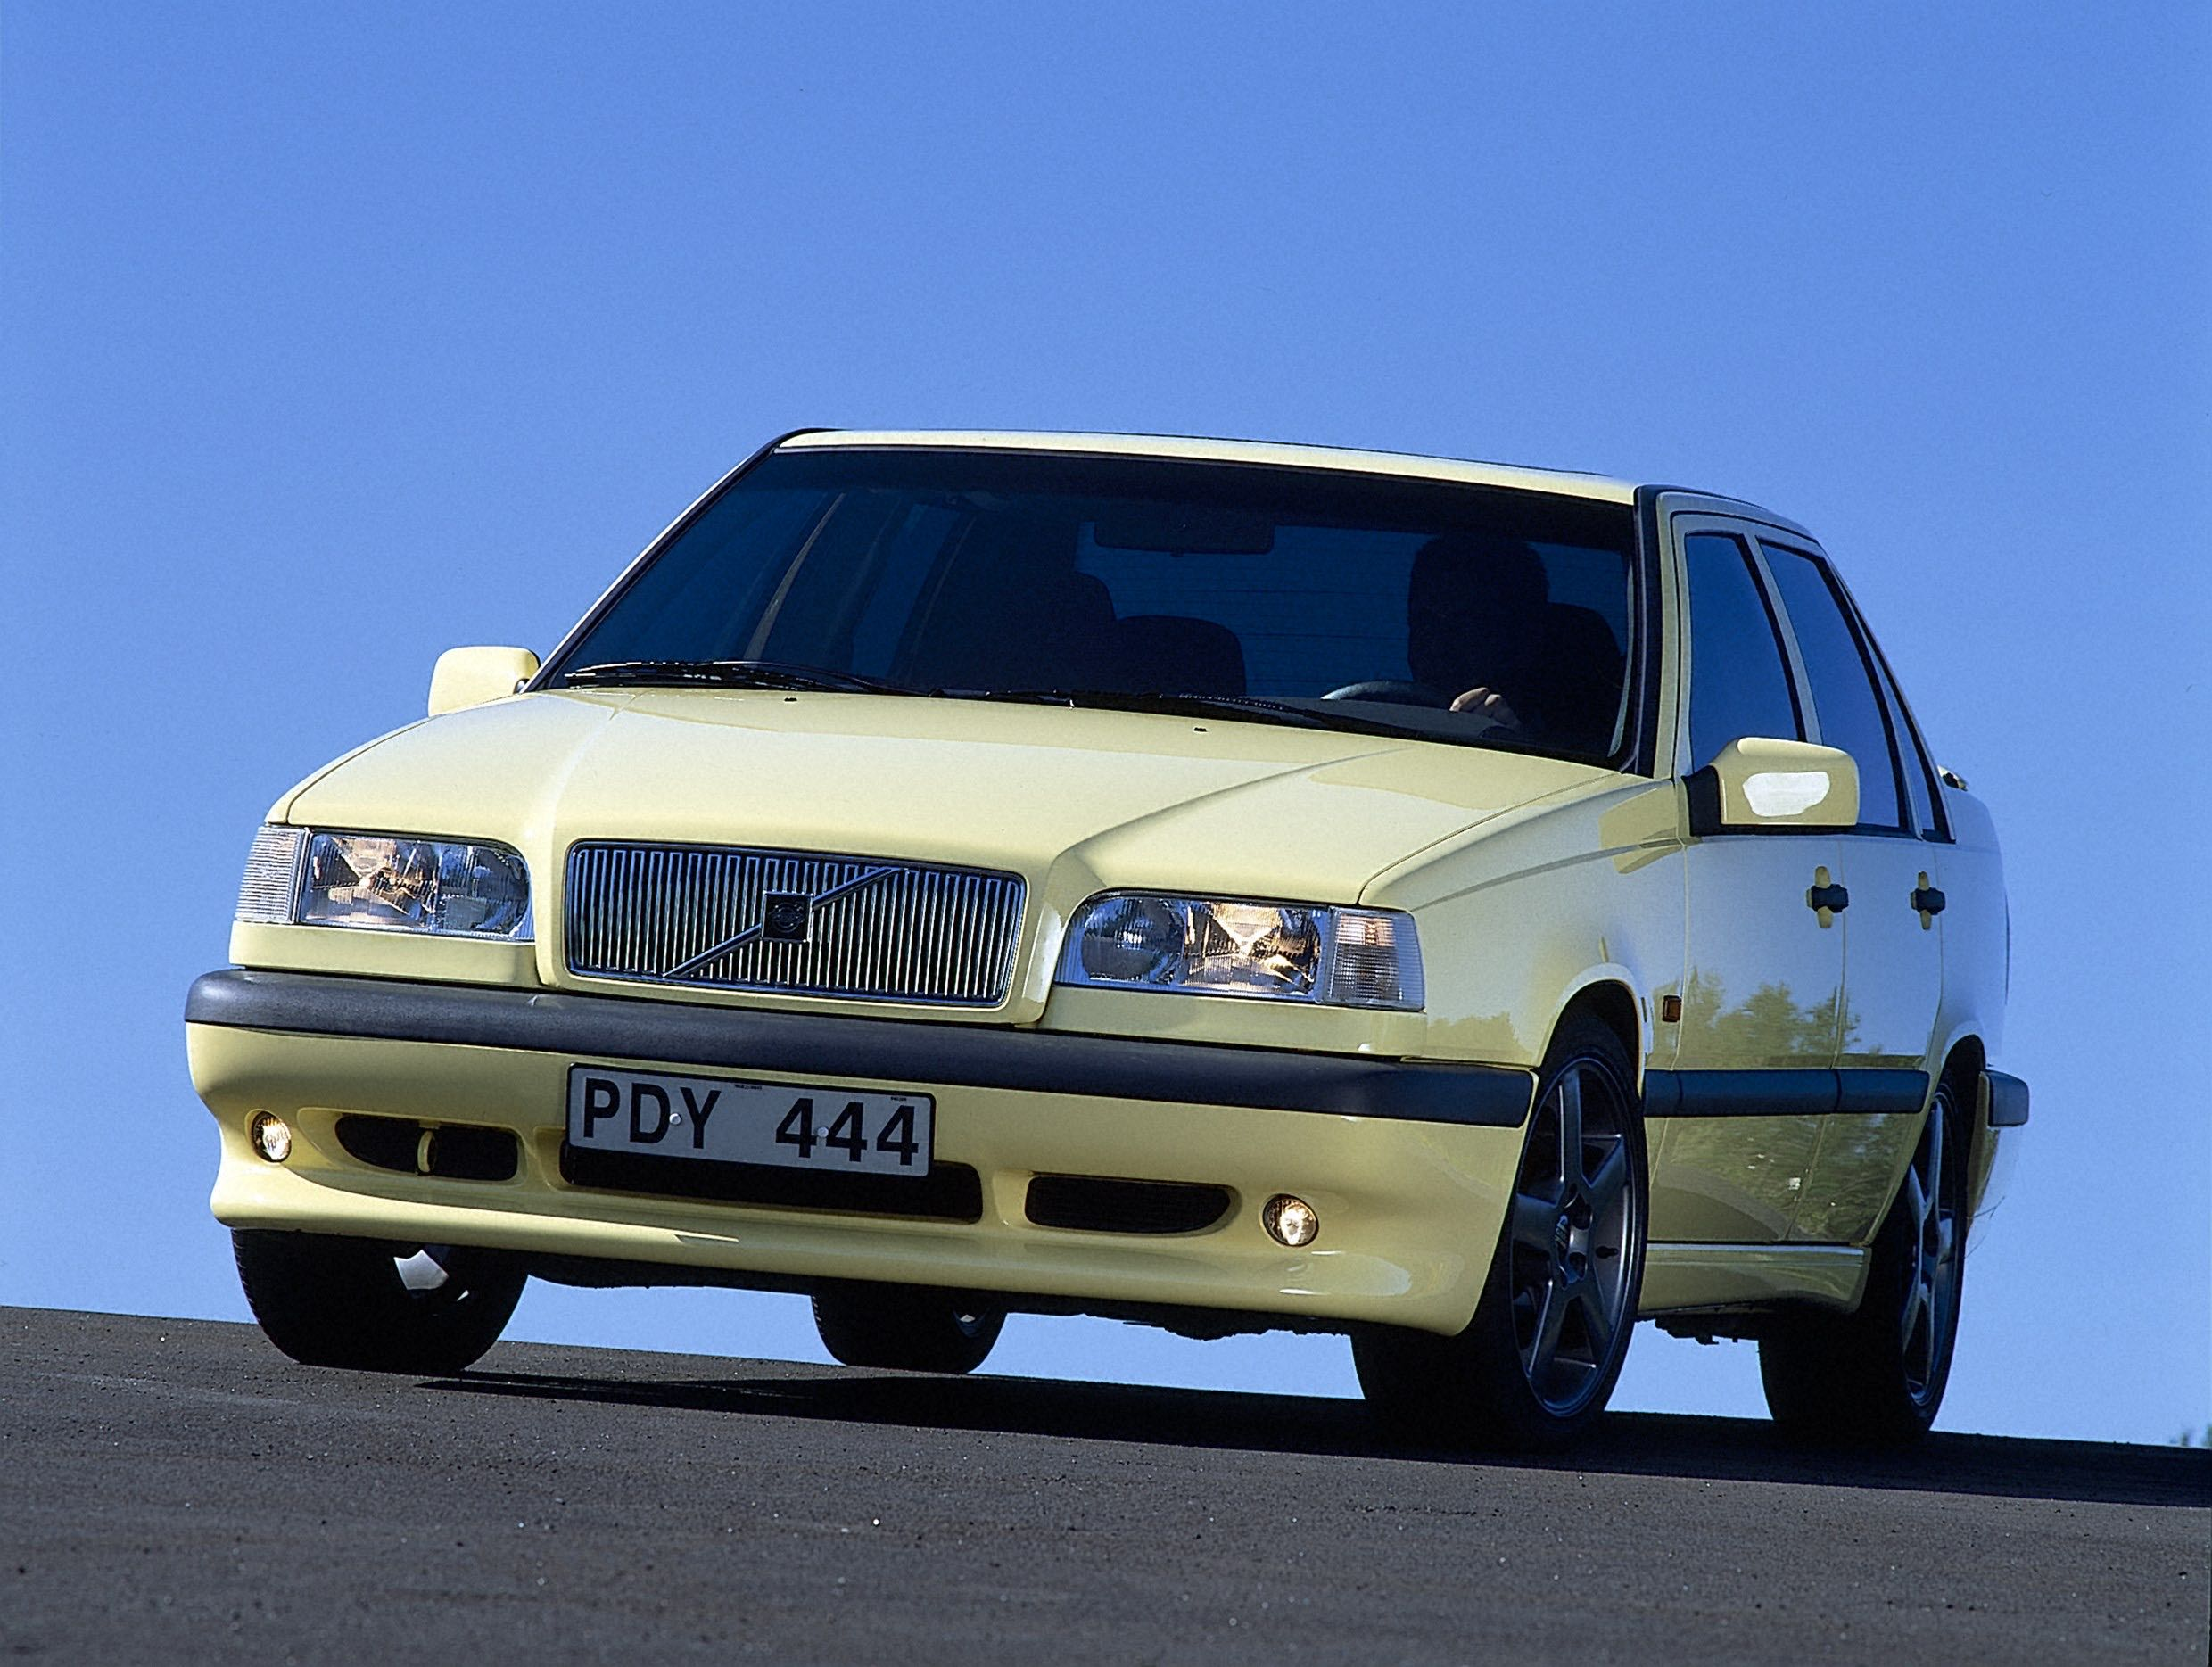 Volvo 850 -  850, 854, 1995, Exterior, Historical, Images, sedan, T-5R, Yellow, Yellow T-5R